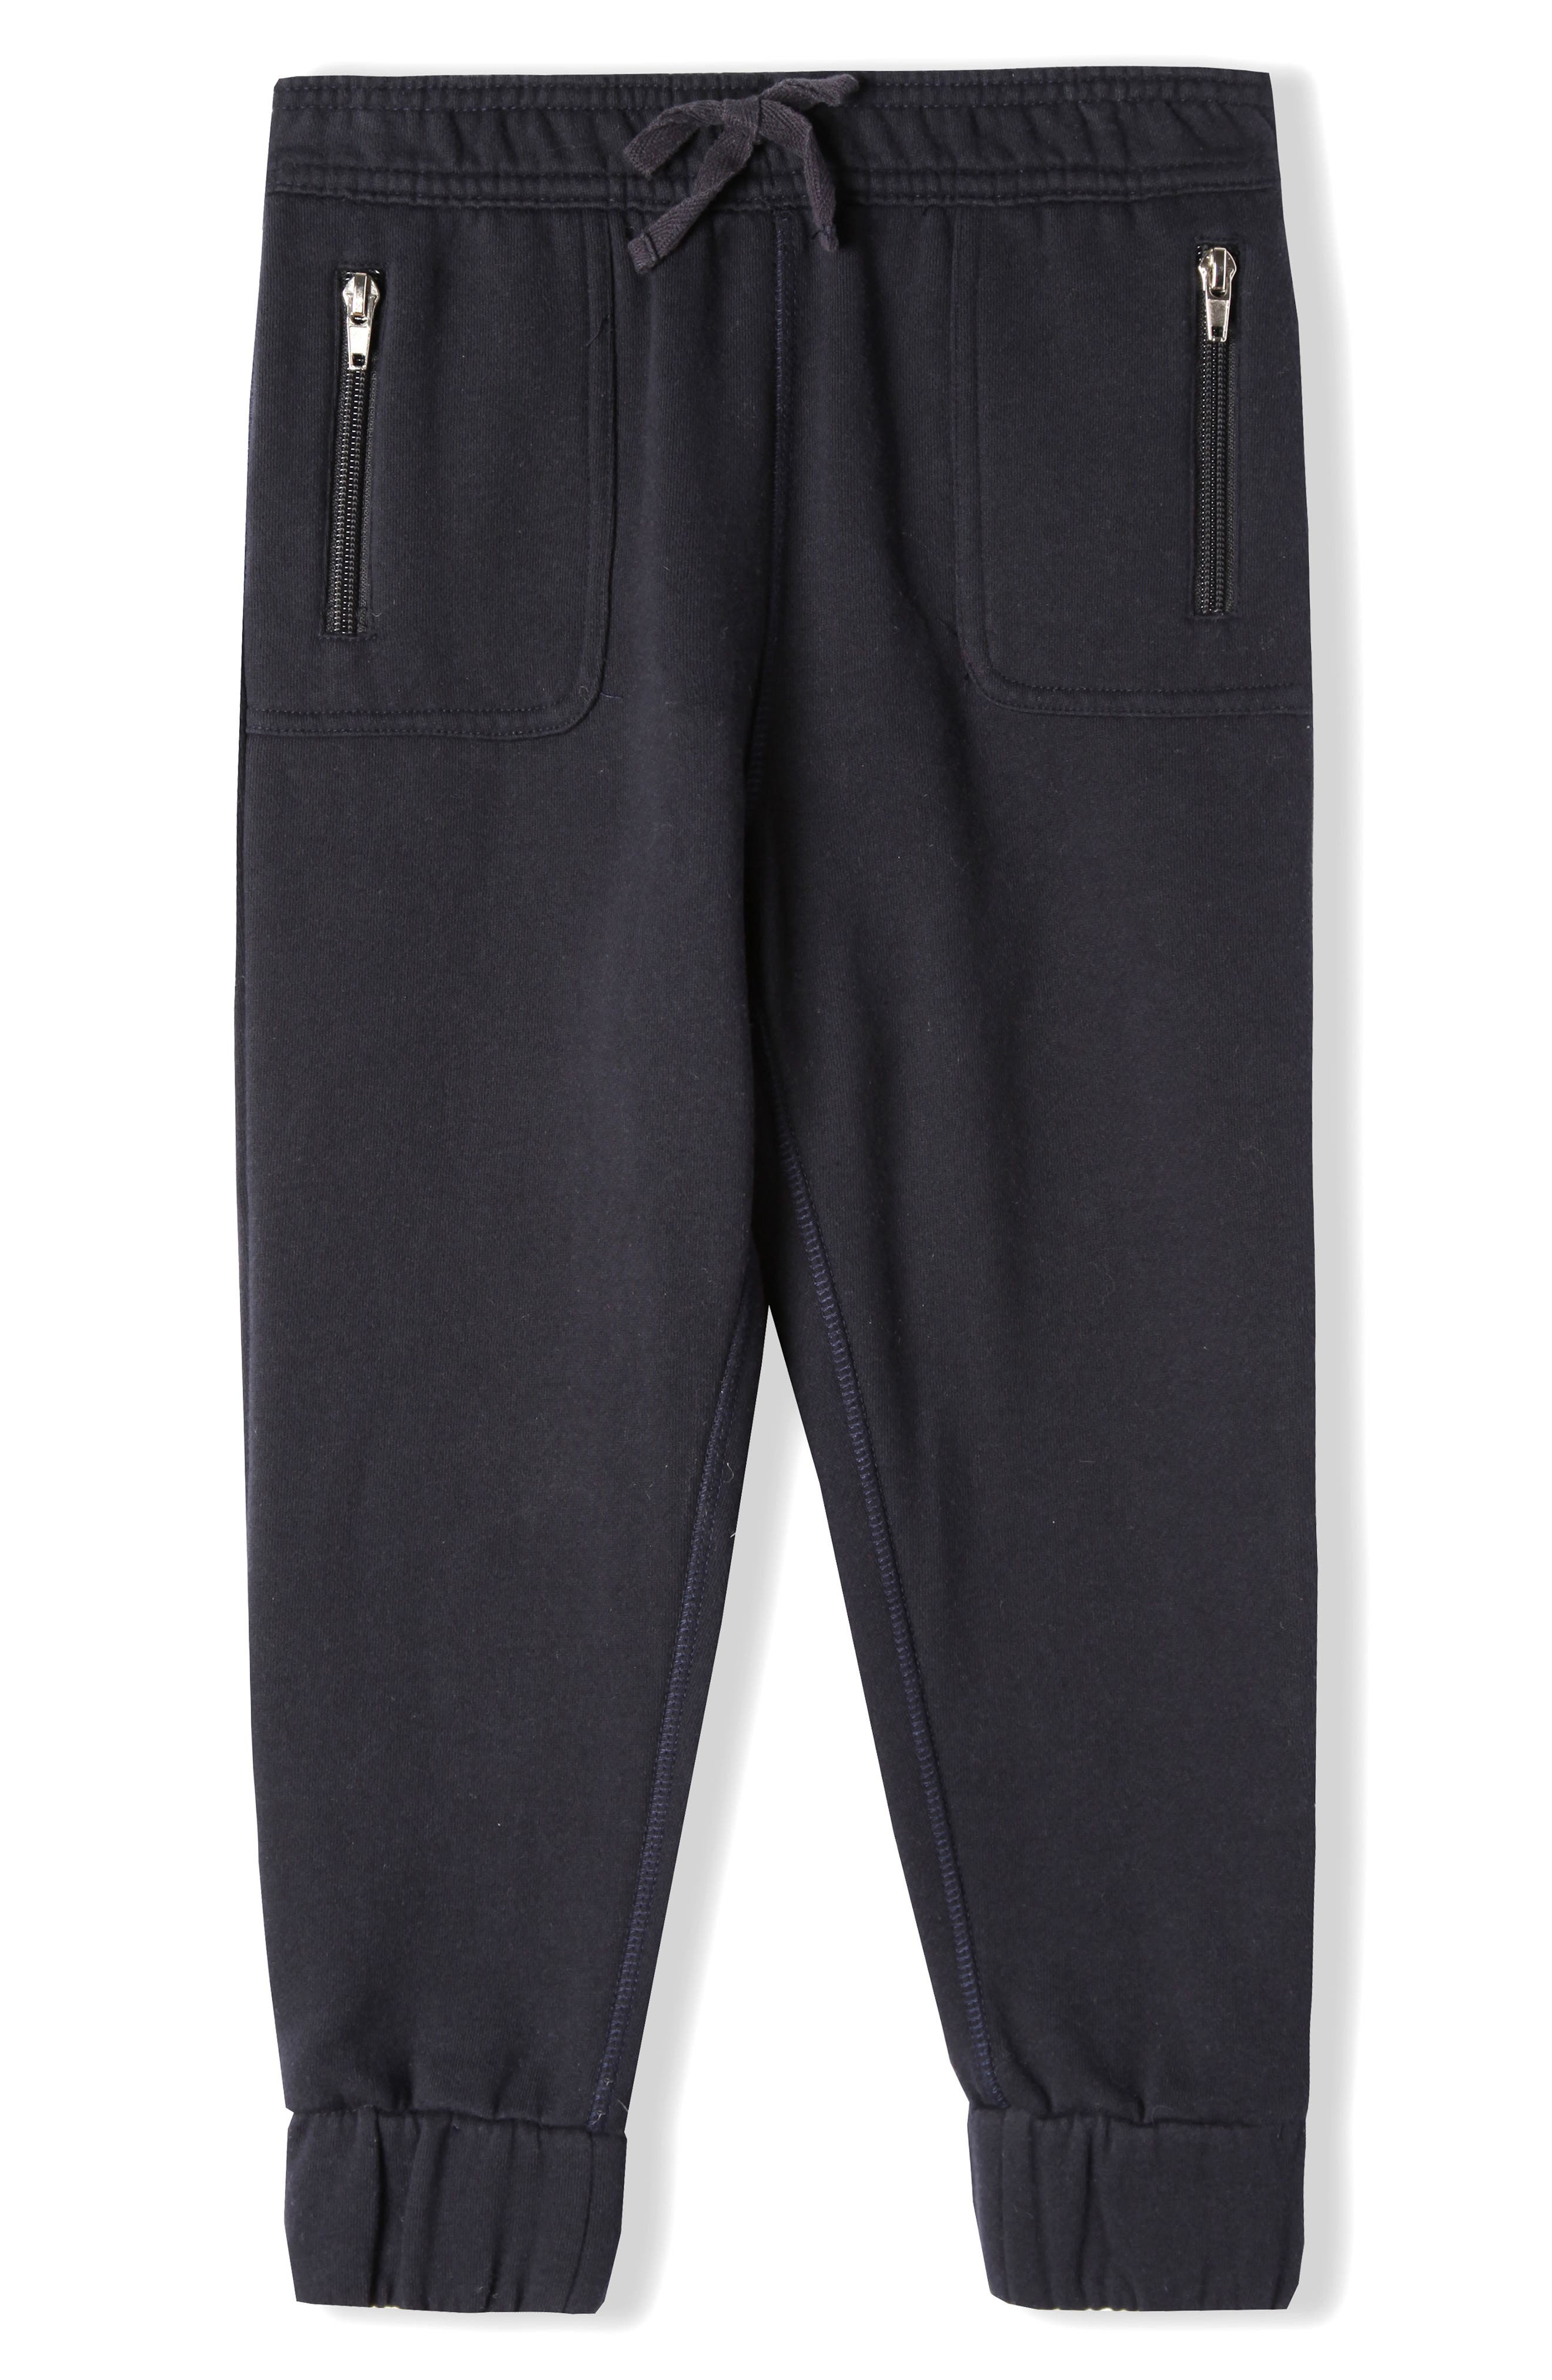 Main Image - Art & Eden Mercer Jogger Pants (Toddler Boys, Little Boys & Big Boys)